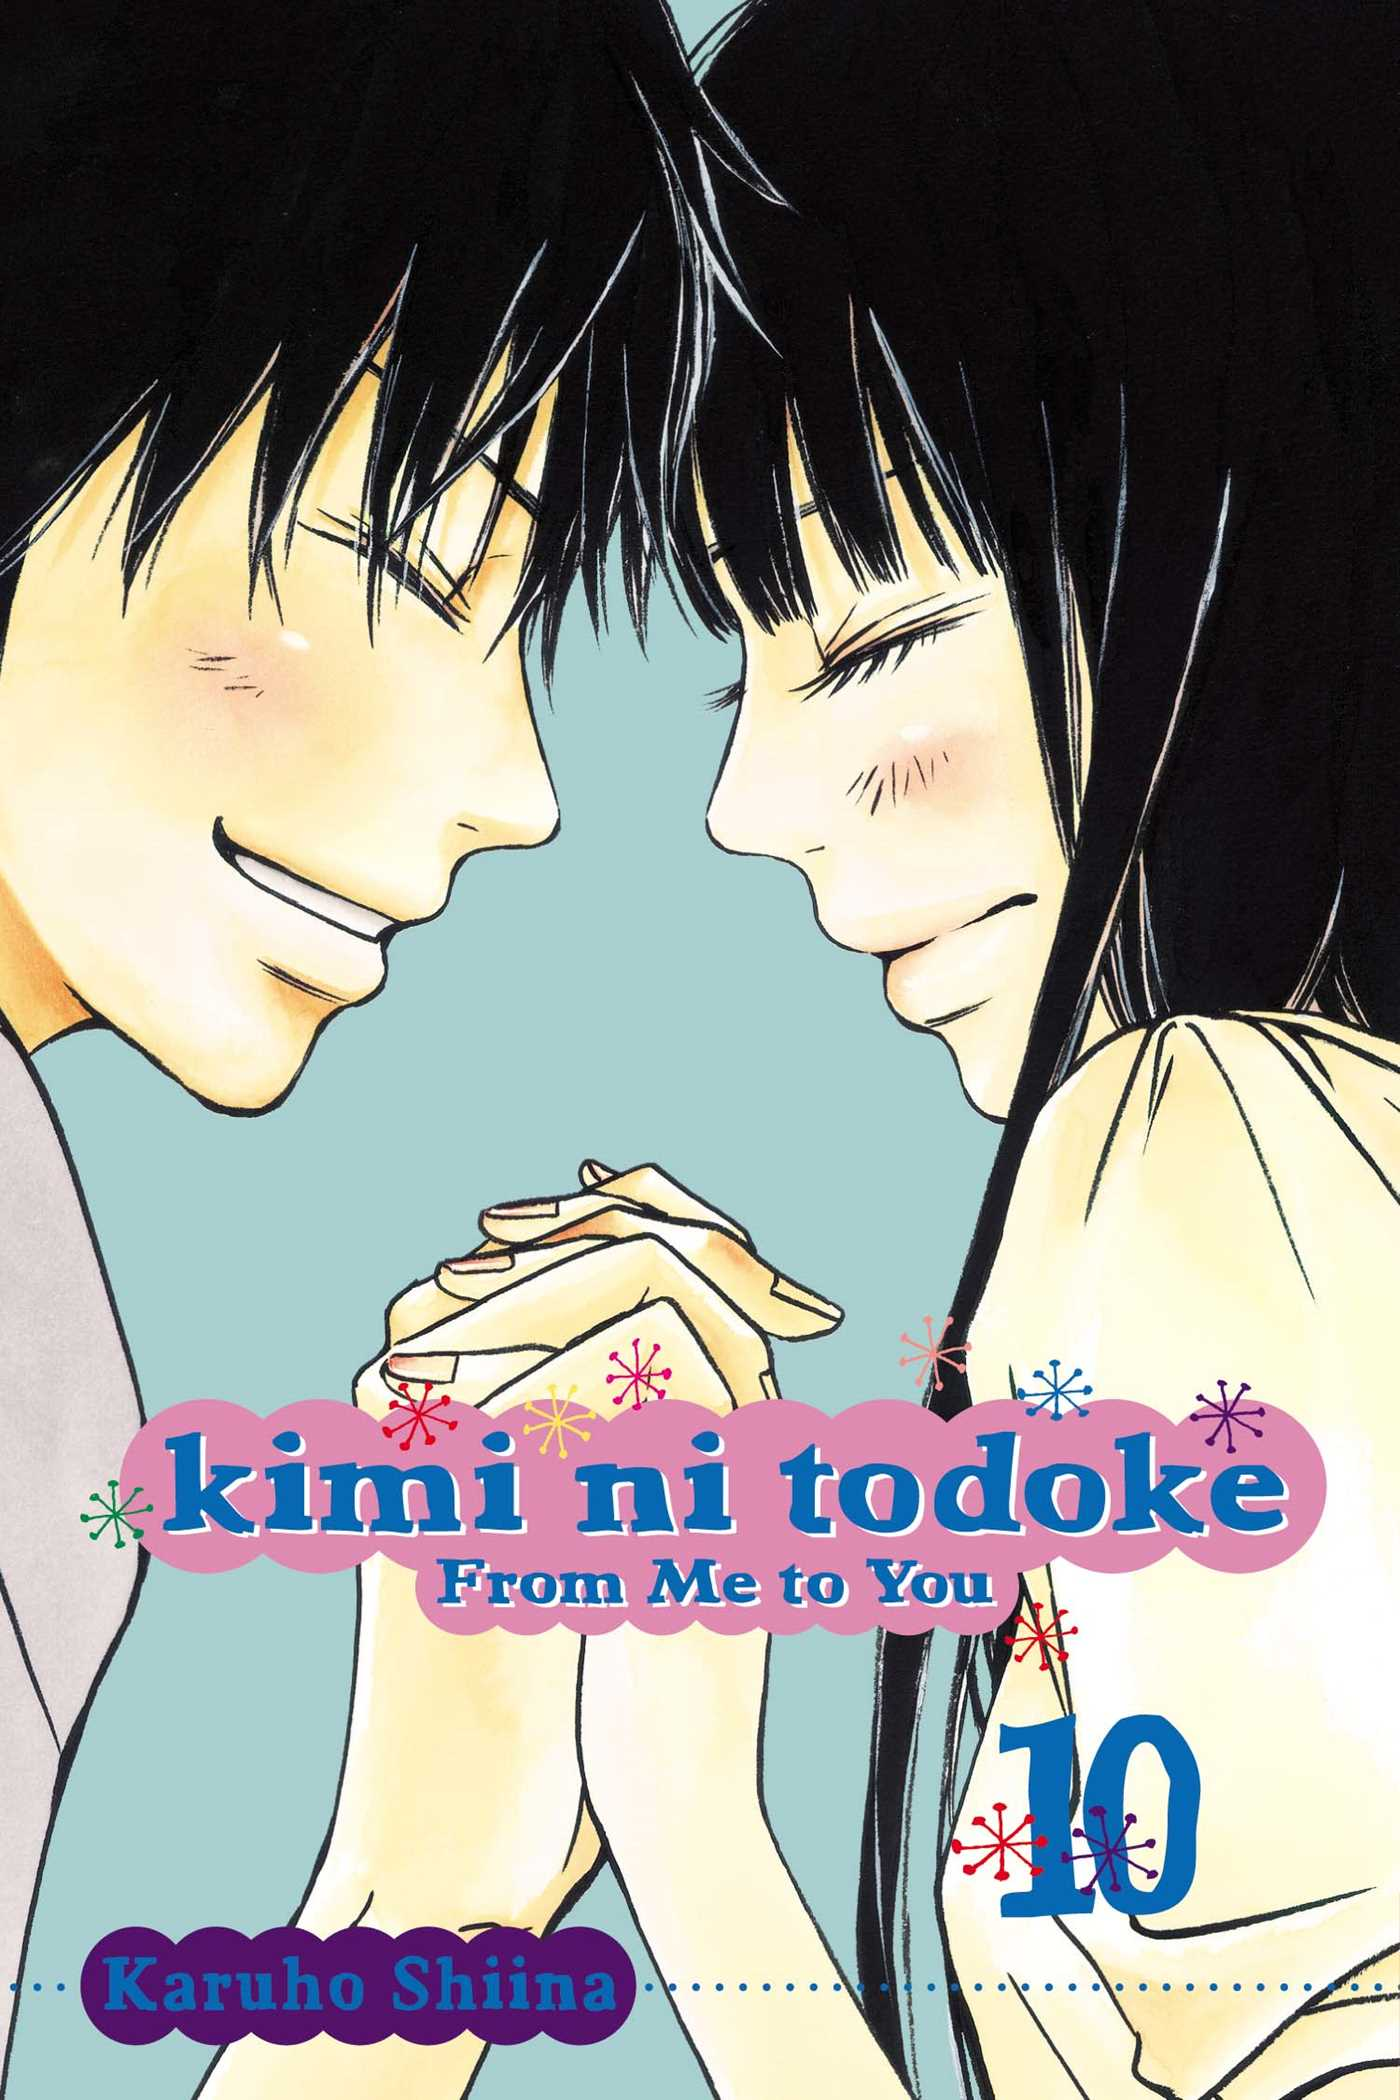 Kimi ni todoke from me to you vol 10 9781421538228 hr